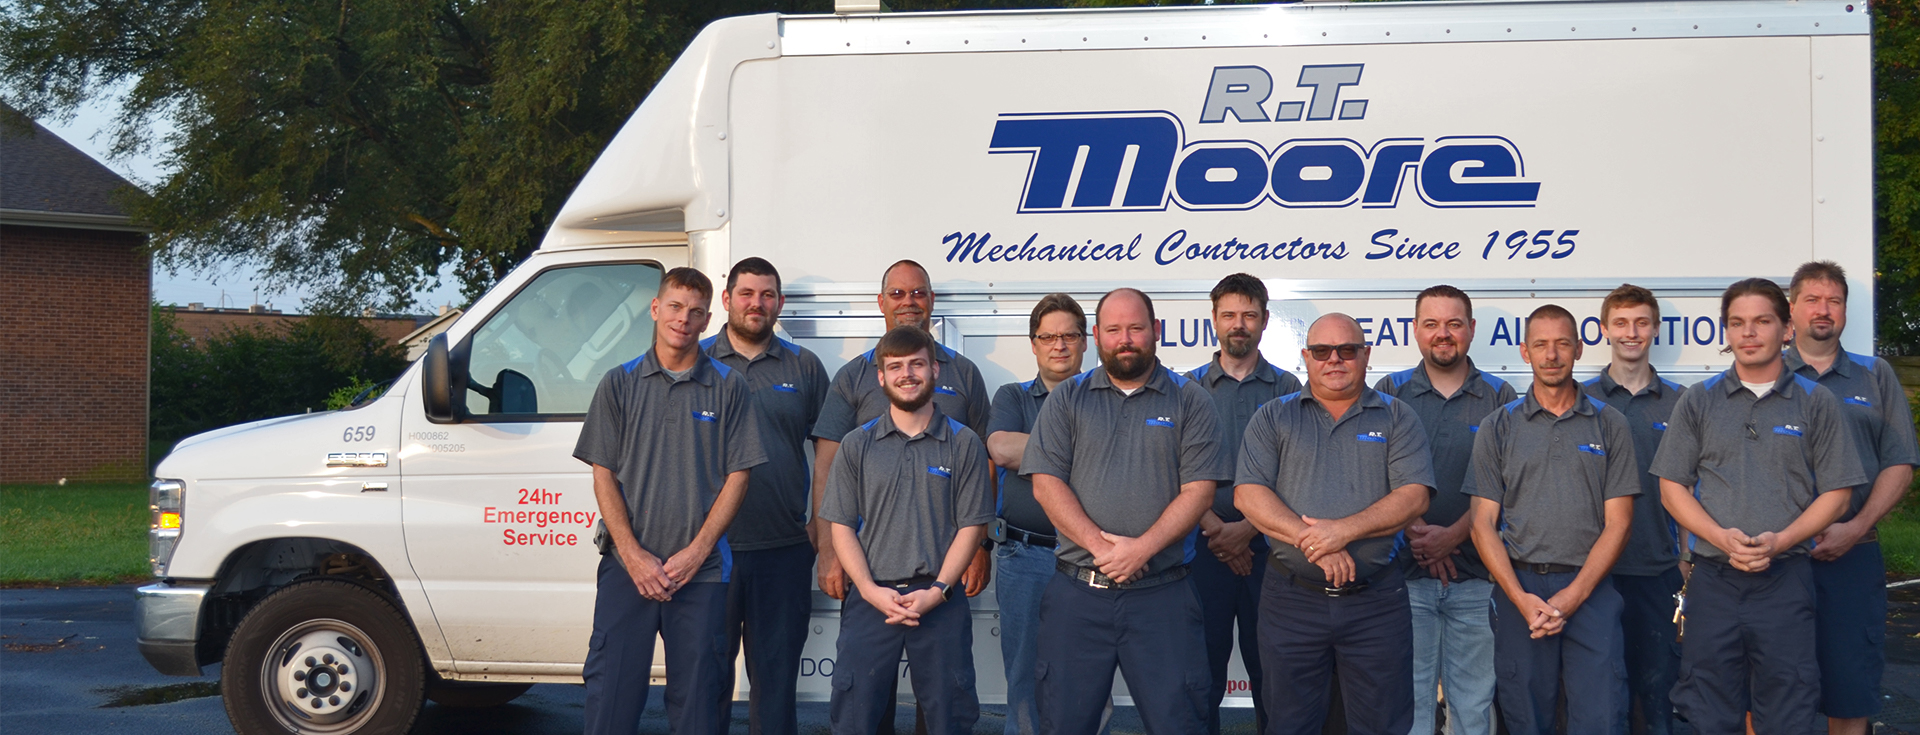 RT Moore Service Technician group photo in front of an RT Moore truck